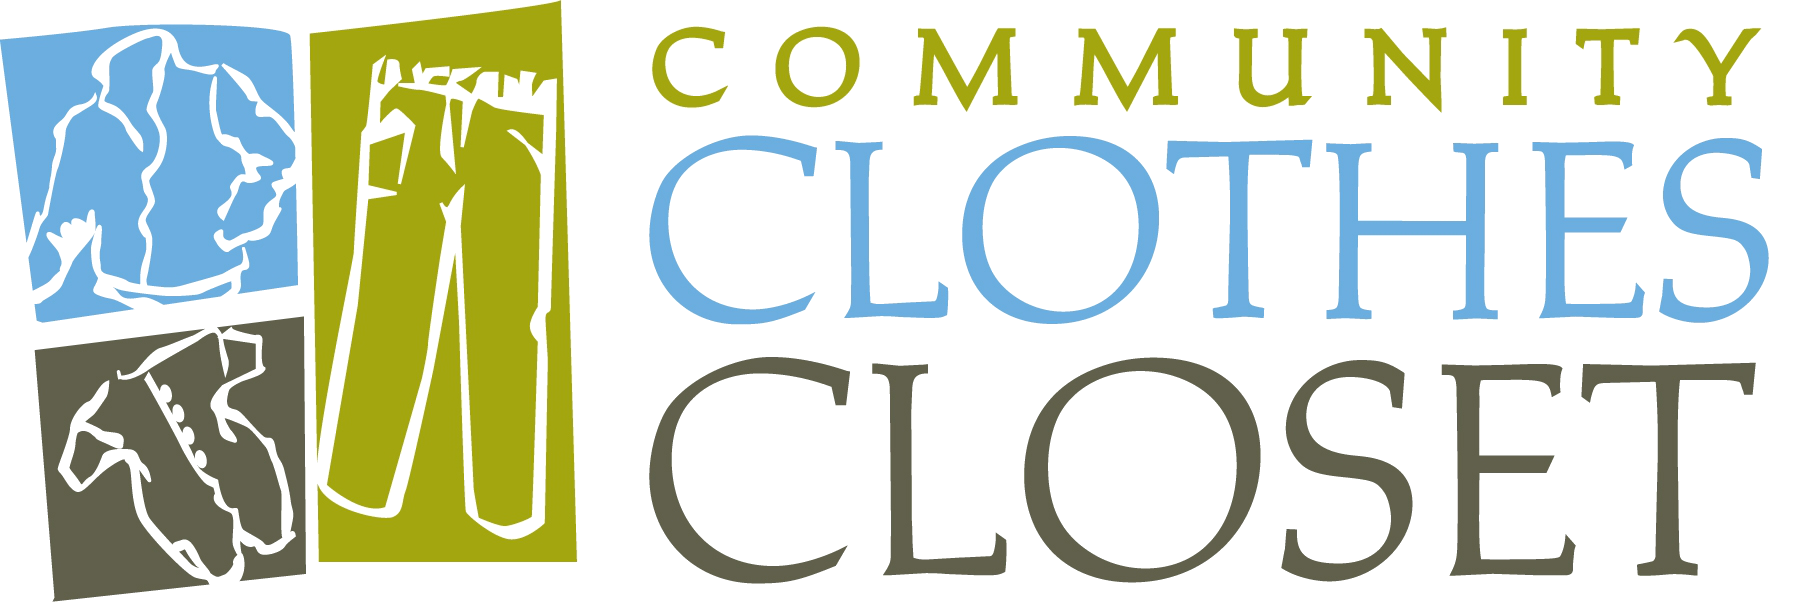 Community Clothes Closet